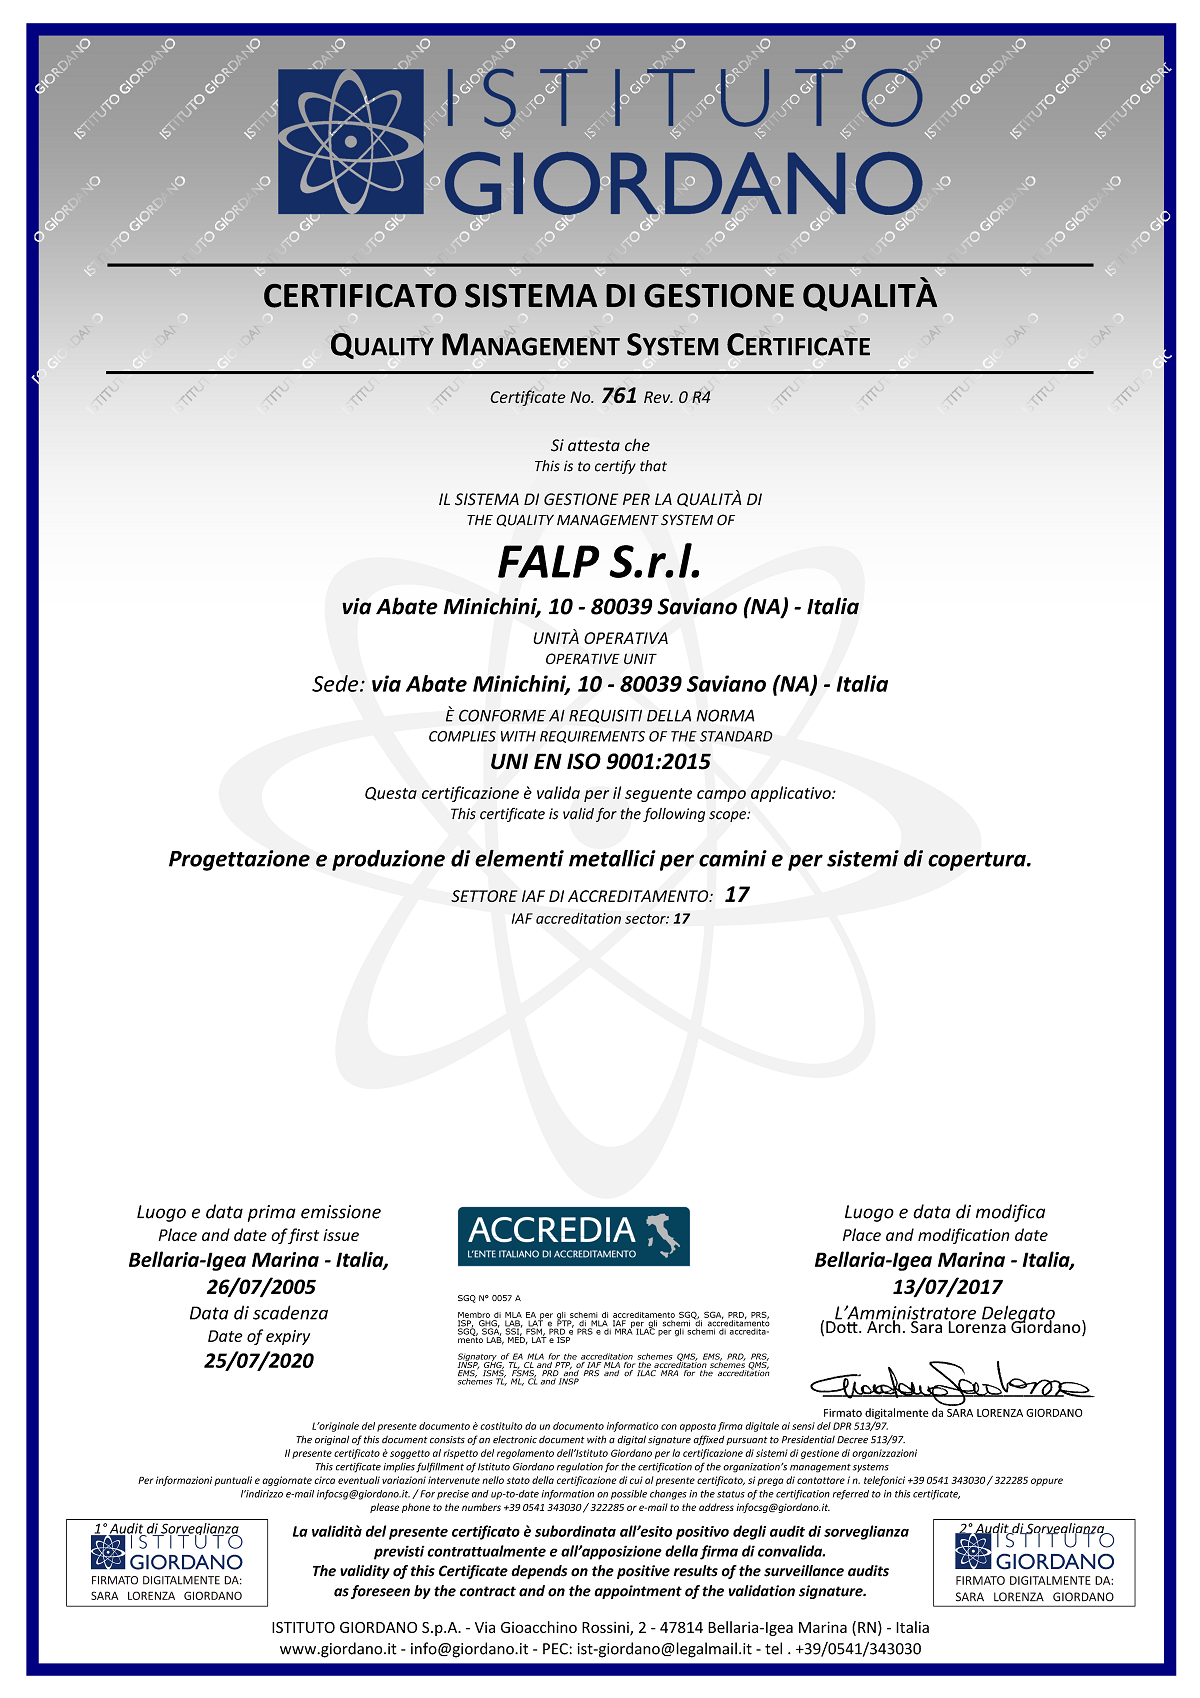 https://www.falpsrl.it/wp-content/uploads/2019/11/certificato-falp-1200x1698.png